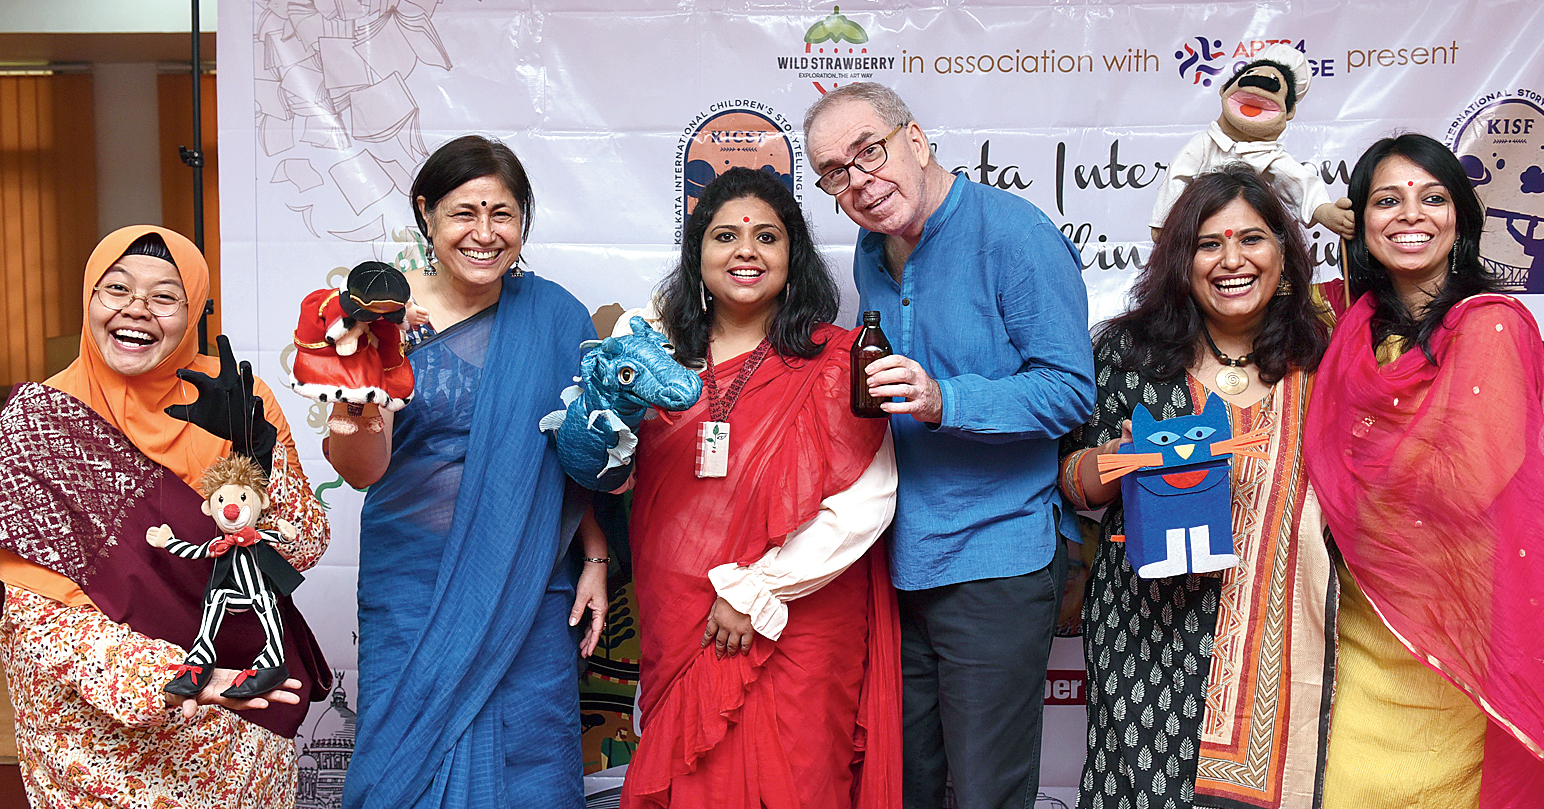 (From left) Jumaini Arif from Singapore, Seema Sapru, the principal of The Heritage School, Priyanka Chatterjee from Calcutta, Roger Jenkins from Singapore, Seema Wahi Mukherjee from Delhi and Nupur Aggarwal from Hyderabad after the workshop.